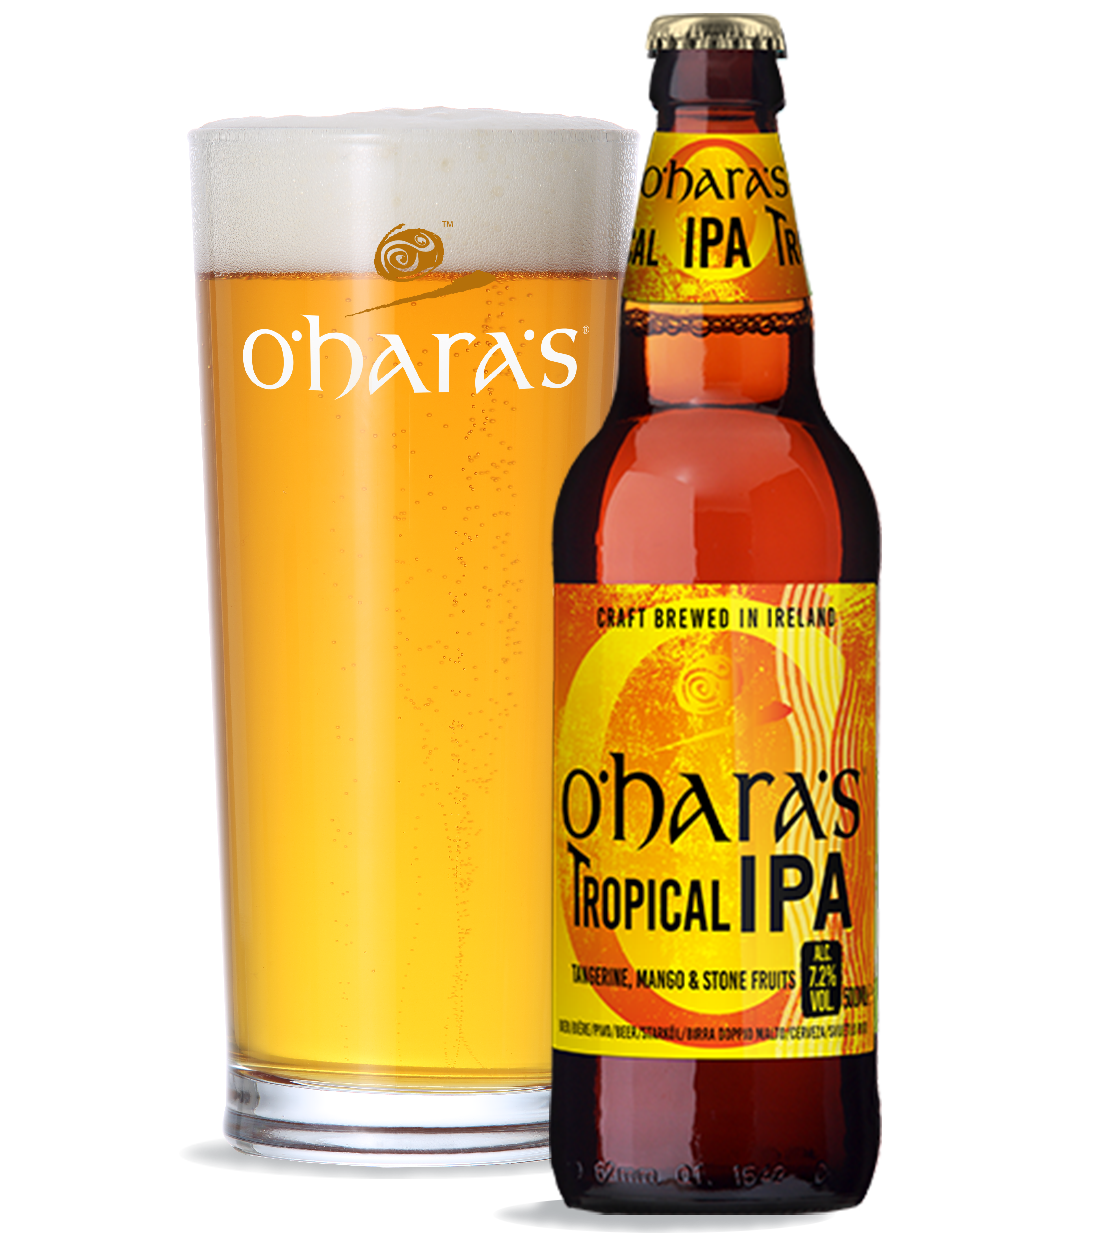 oharas-tropical-ipa-for-beer-page-bottle